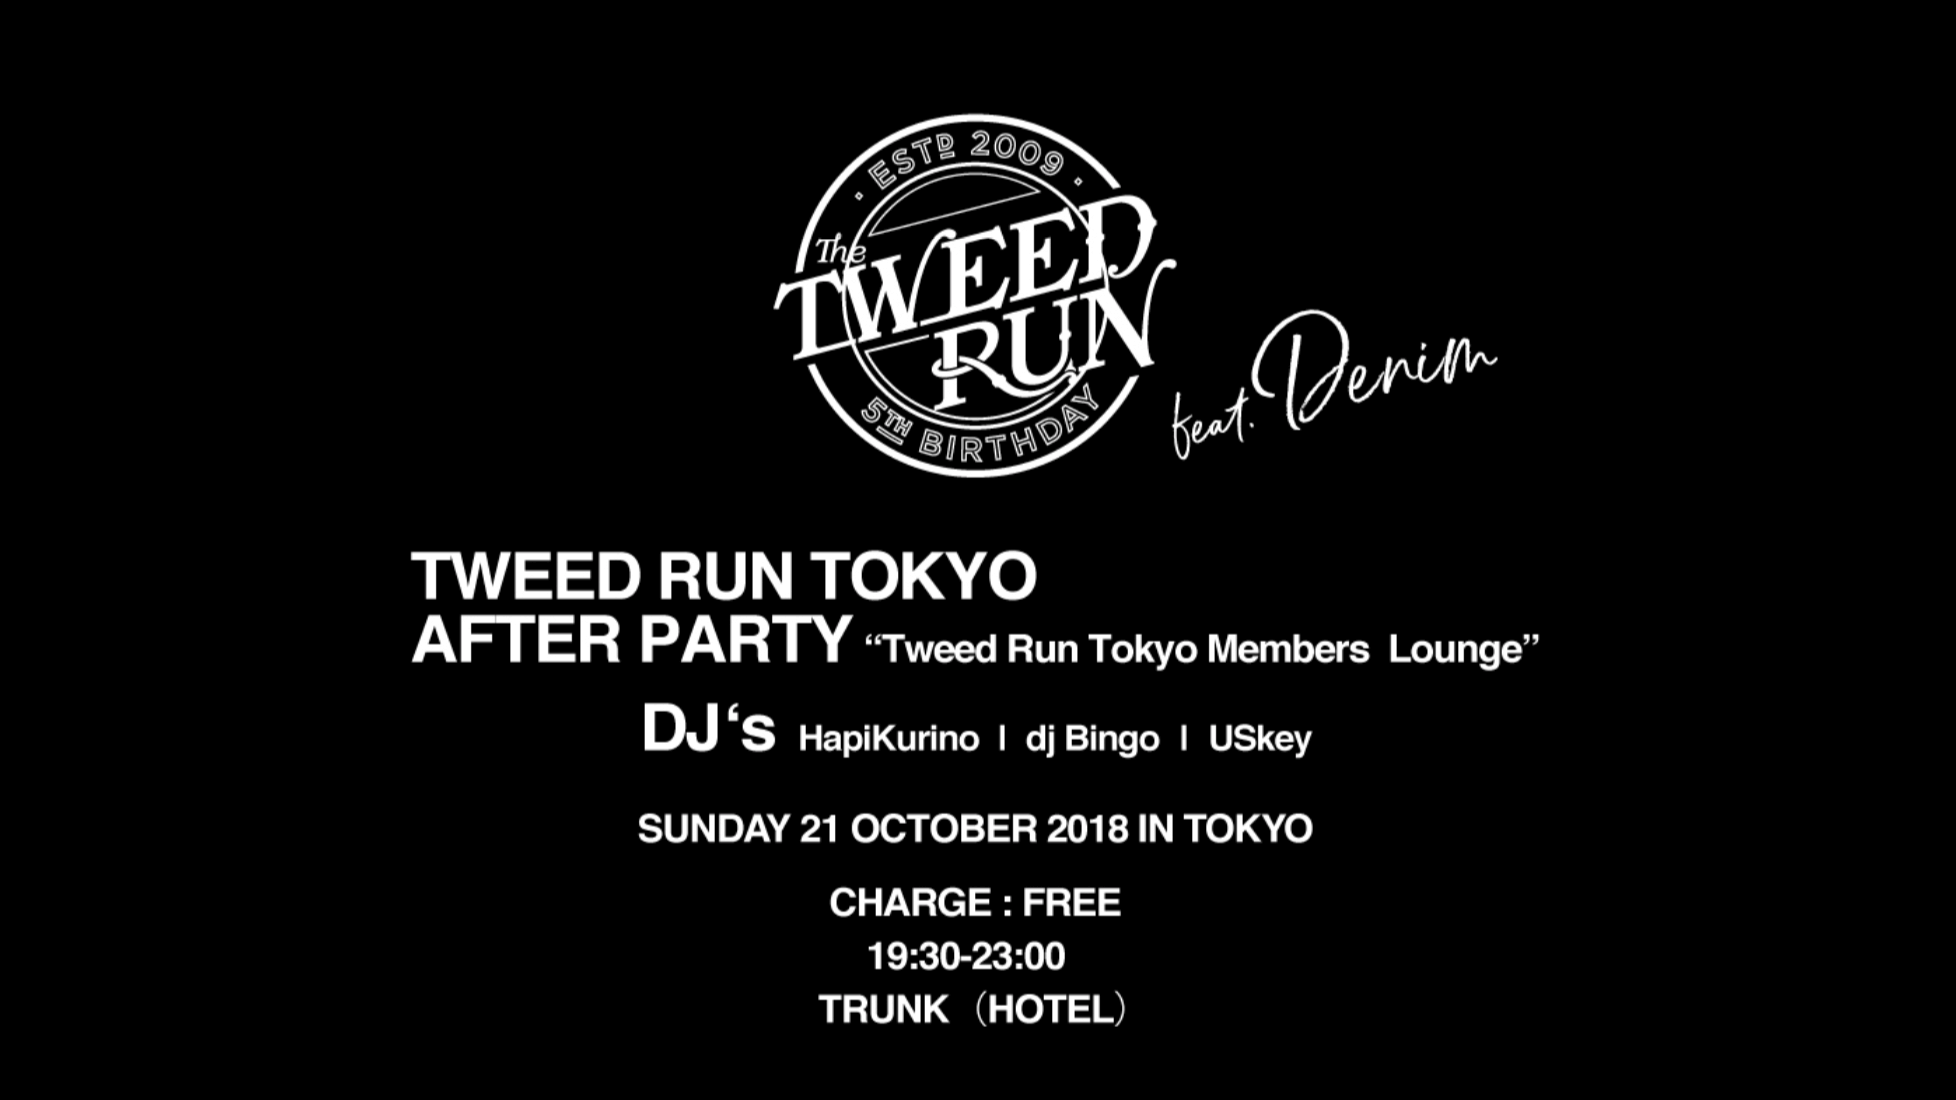 TWEED RUN TOKYO AFTER PARTY